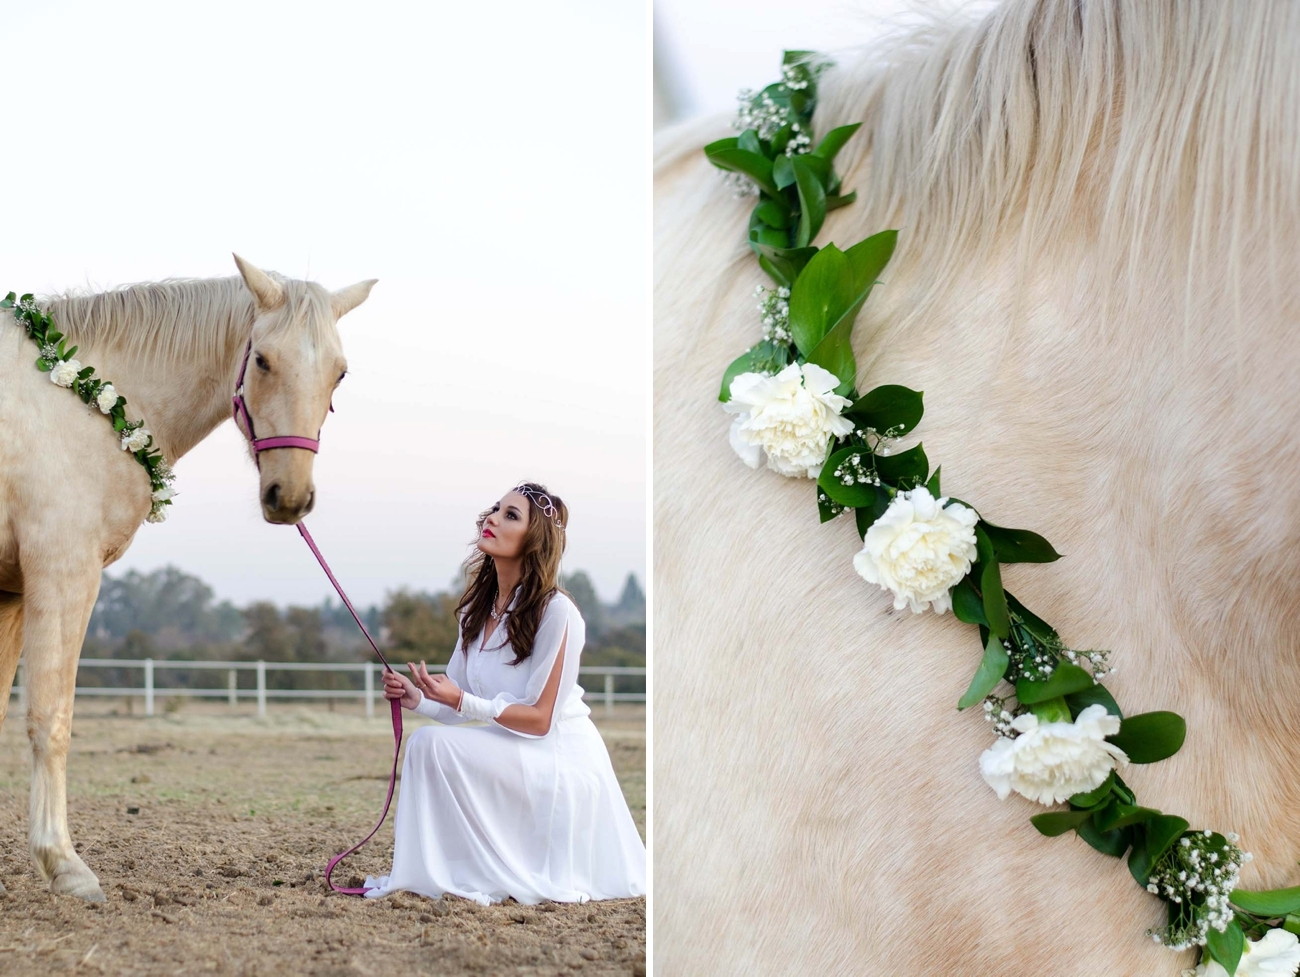 Floral Garland for Horse | Credit: MORE Than Just Photography